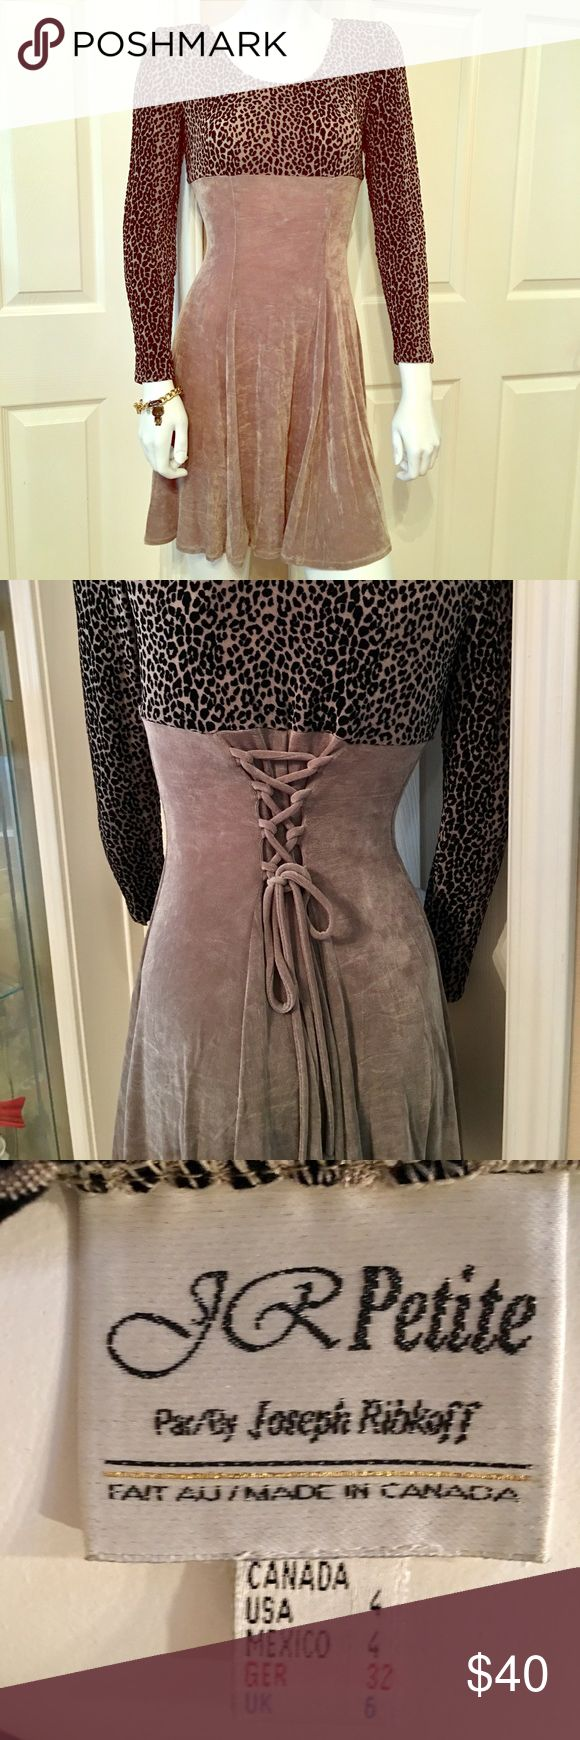 J.R. Petite Dress This unique, velvety spandex dress will really accentuate your curves!  Size 4, w/ neat lace-up feature in back.  Shoulder pads- but could take out!  Beautiful leopard fabric!  Worn once. JR Petite Dresses Long Sleeve